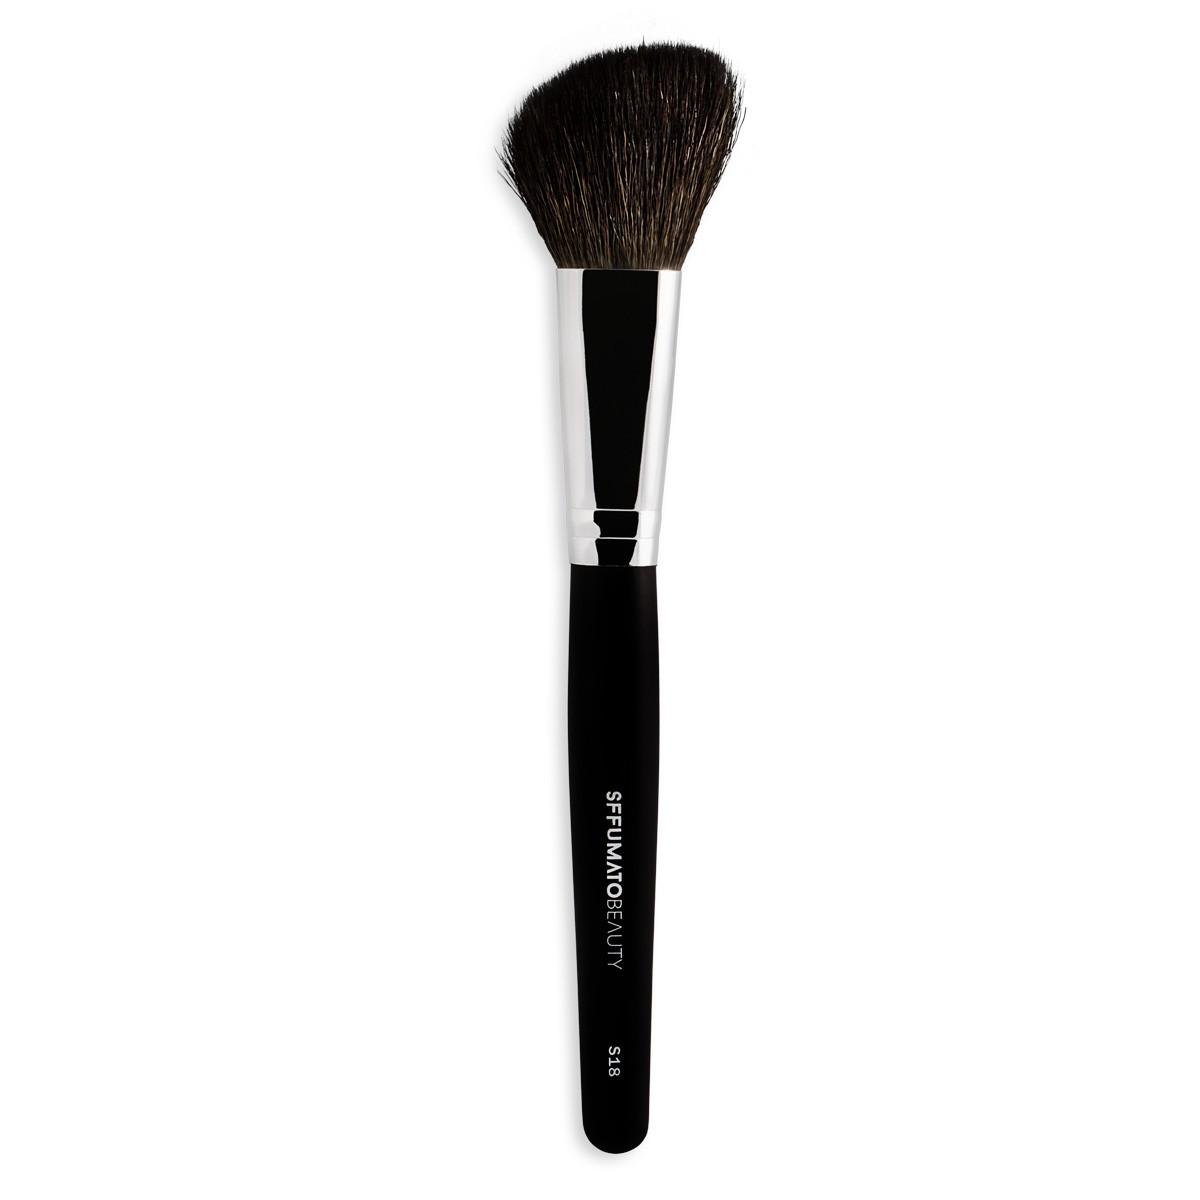 S18 - Pincel Para Blush E Contorno Sffumato Beauty